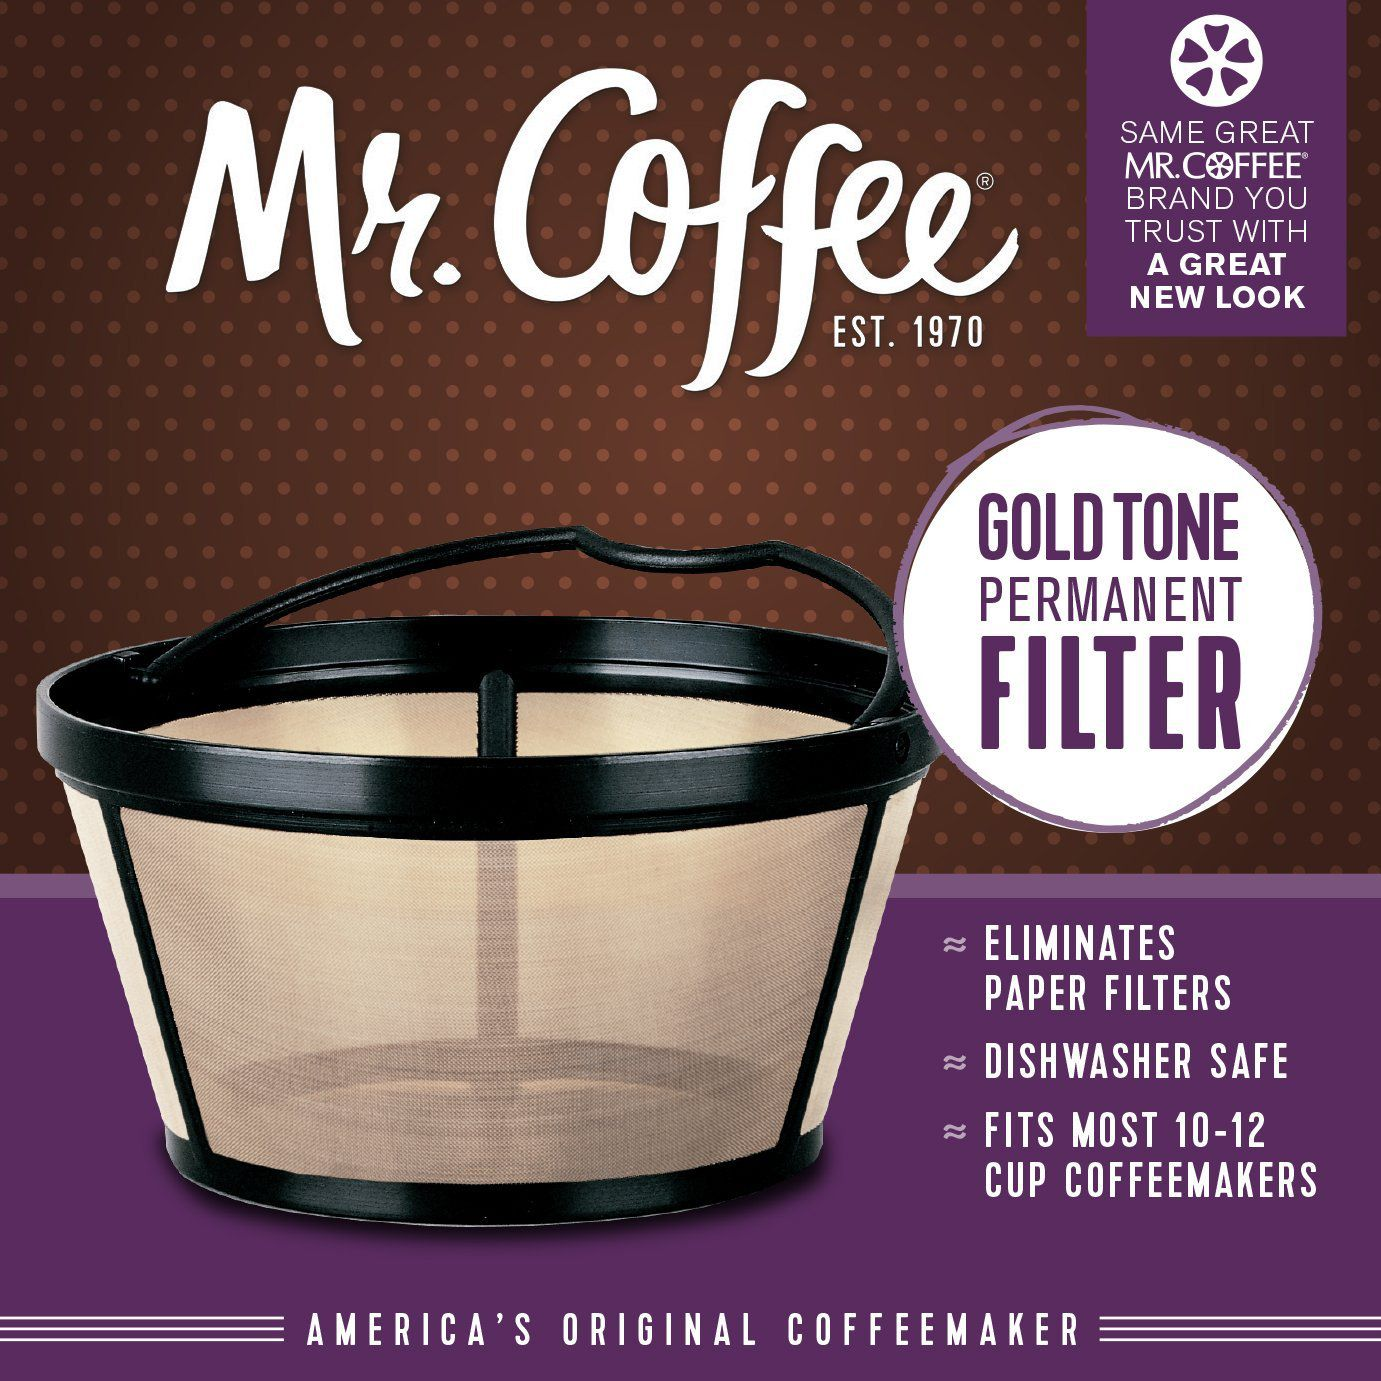 Mr. Coffee Basket-Style Gold Tone Permanent Filter SALE Coffee Accessories Shop | BuyMoreCoffee.com